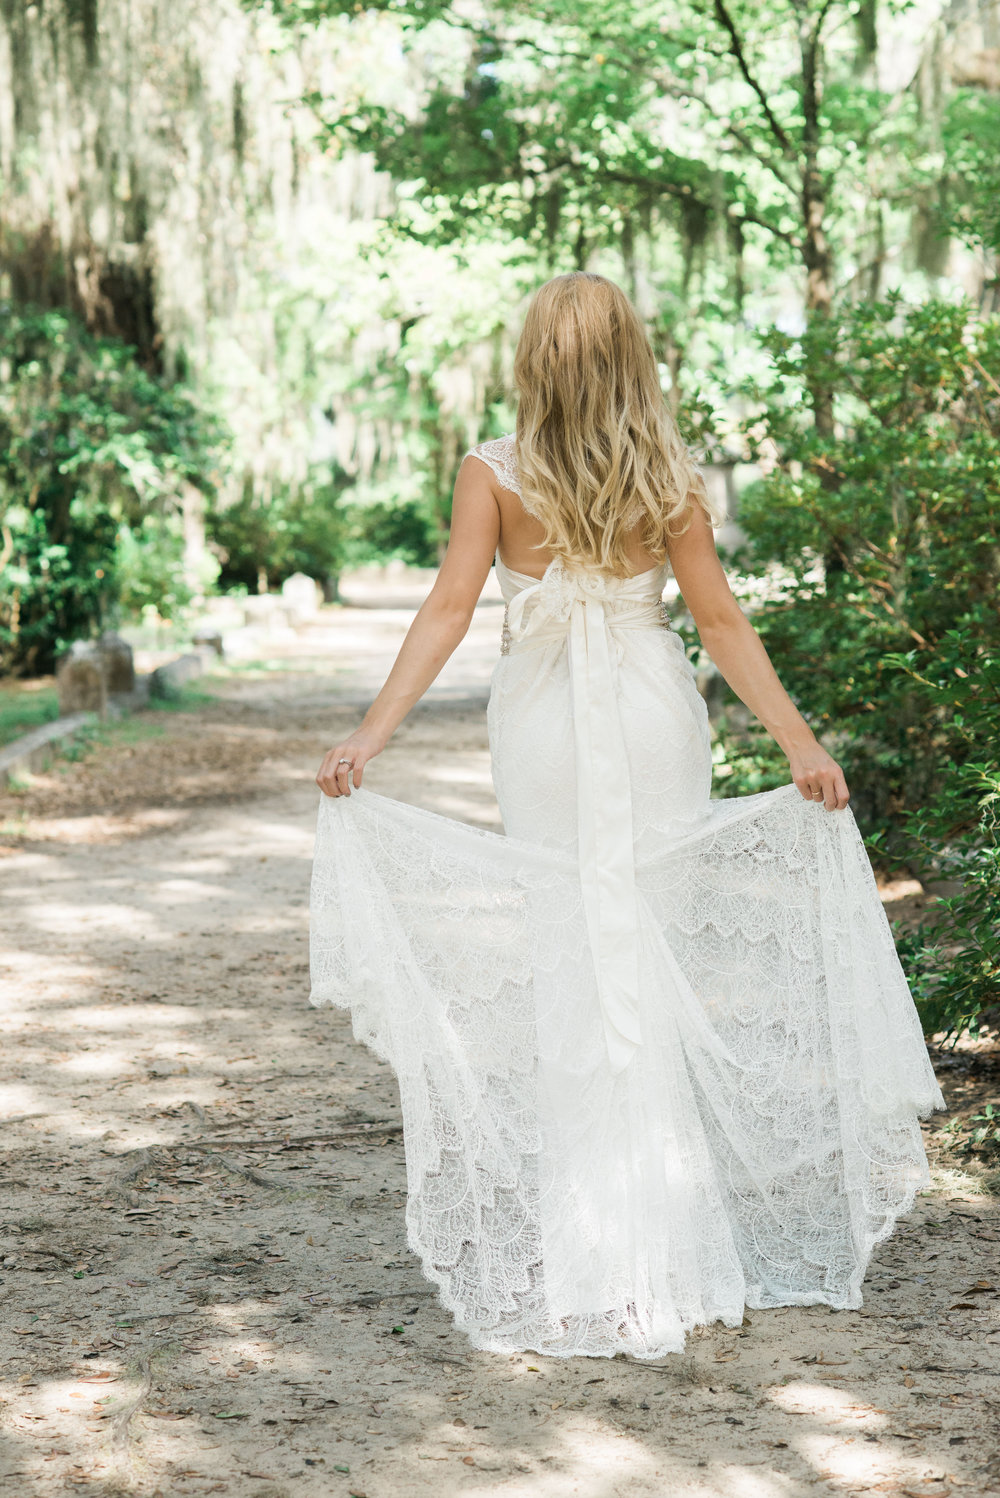 callie-beale-photography-Bonaventure-cemetery-michelle-royal-makeup-cemetery-wedding-ivory-and-beau-wedding-planning-anna-campbell-harper-savannah-bridal-boutique-savannah-wedding-dresses-savannah-weddings-20.jpg